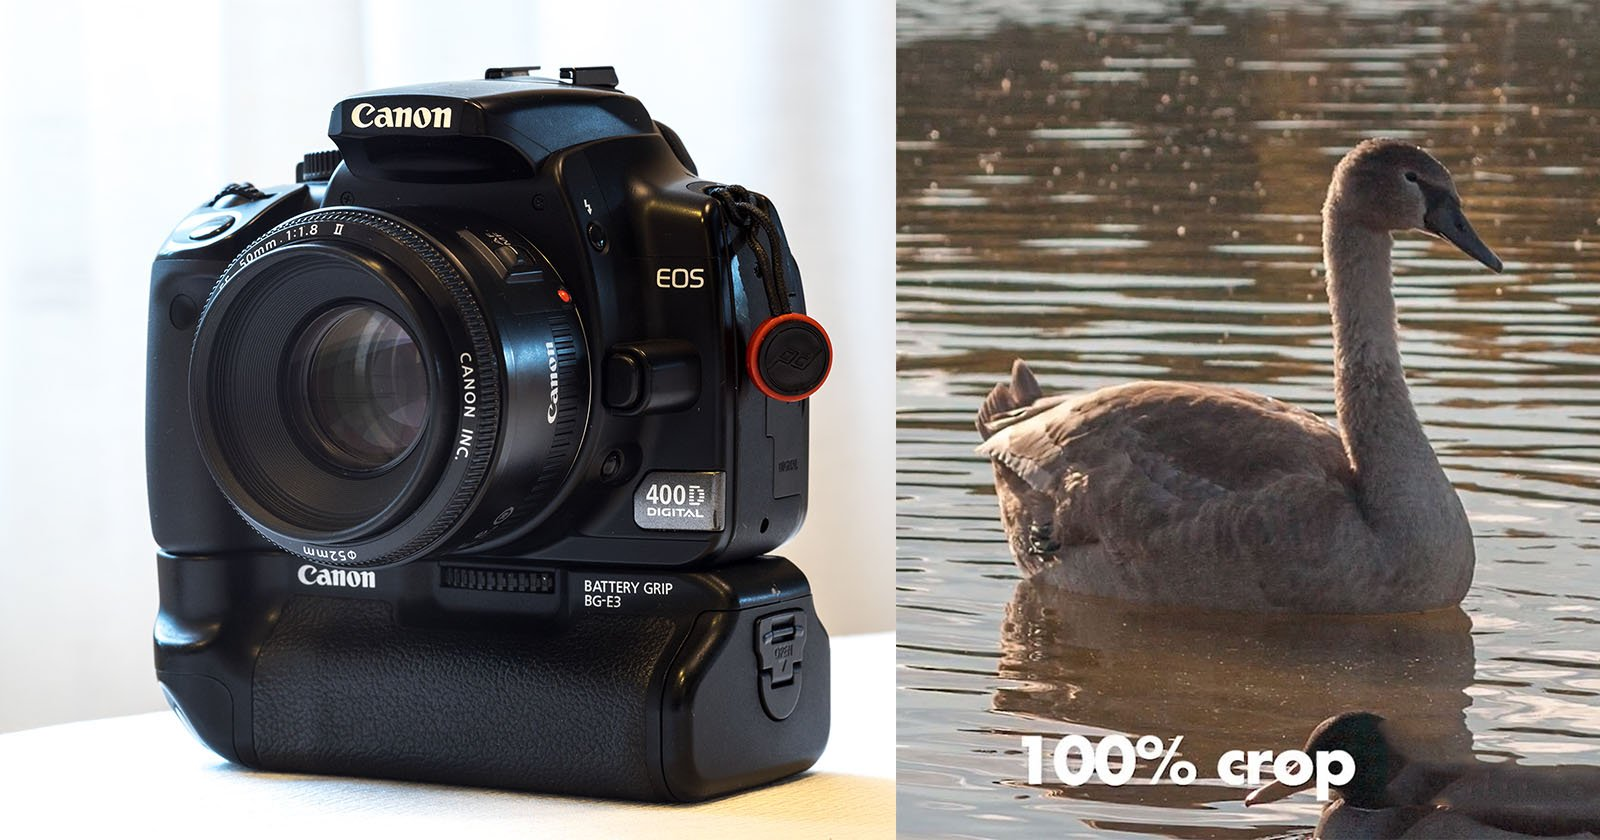 Buying a Used DSLR Kit for $80: Here's What You Get for the